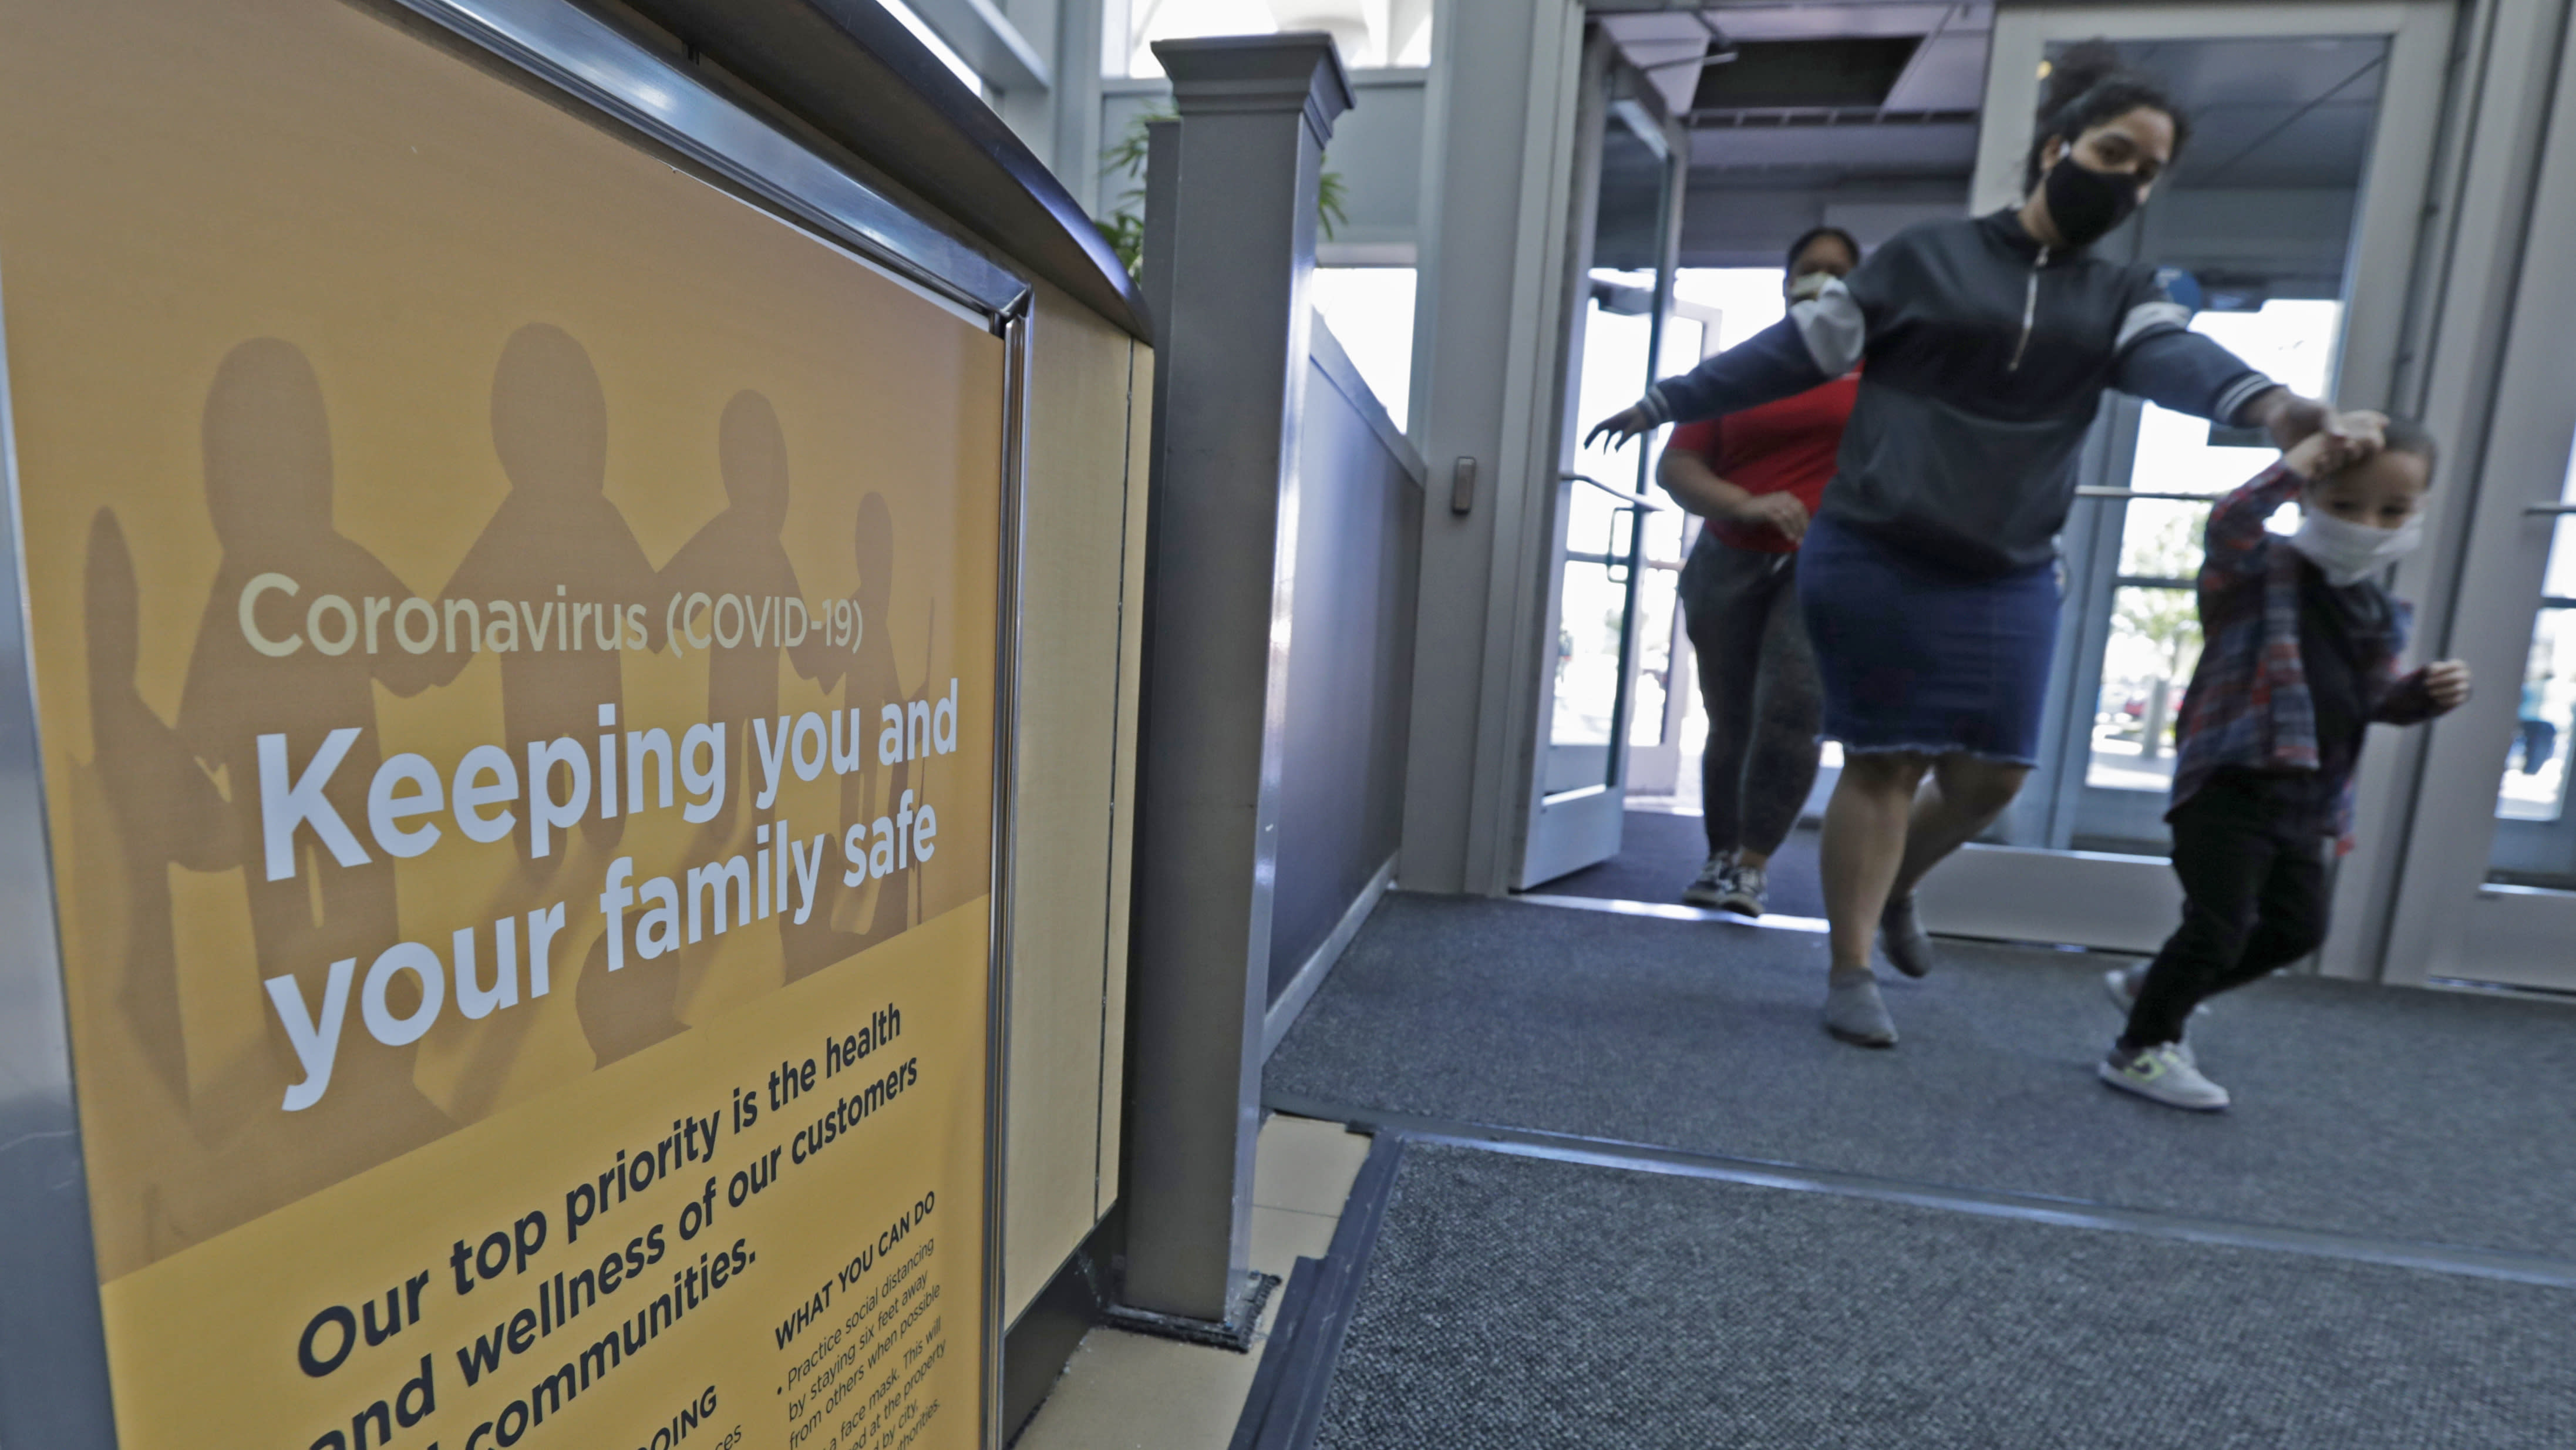 A sign on how to keep your family safe during the coronavirus pandemic rests near an entrance to SouthPark Mall, Wednesday, May 13, 2020, in Strongsville, Ohio. Ohio retail businesses reopened Tuesday following a nearly two-month-long shutdown ordered by Gov. Mike DeWine to limit the spread of the coronavirus. (AP Photo/Tony Dejak)